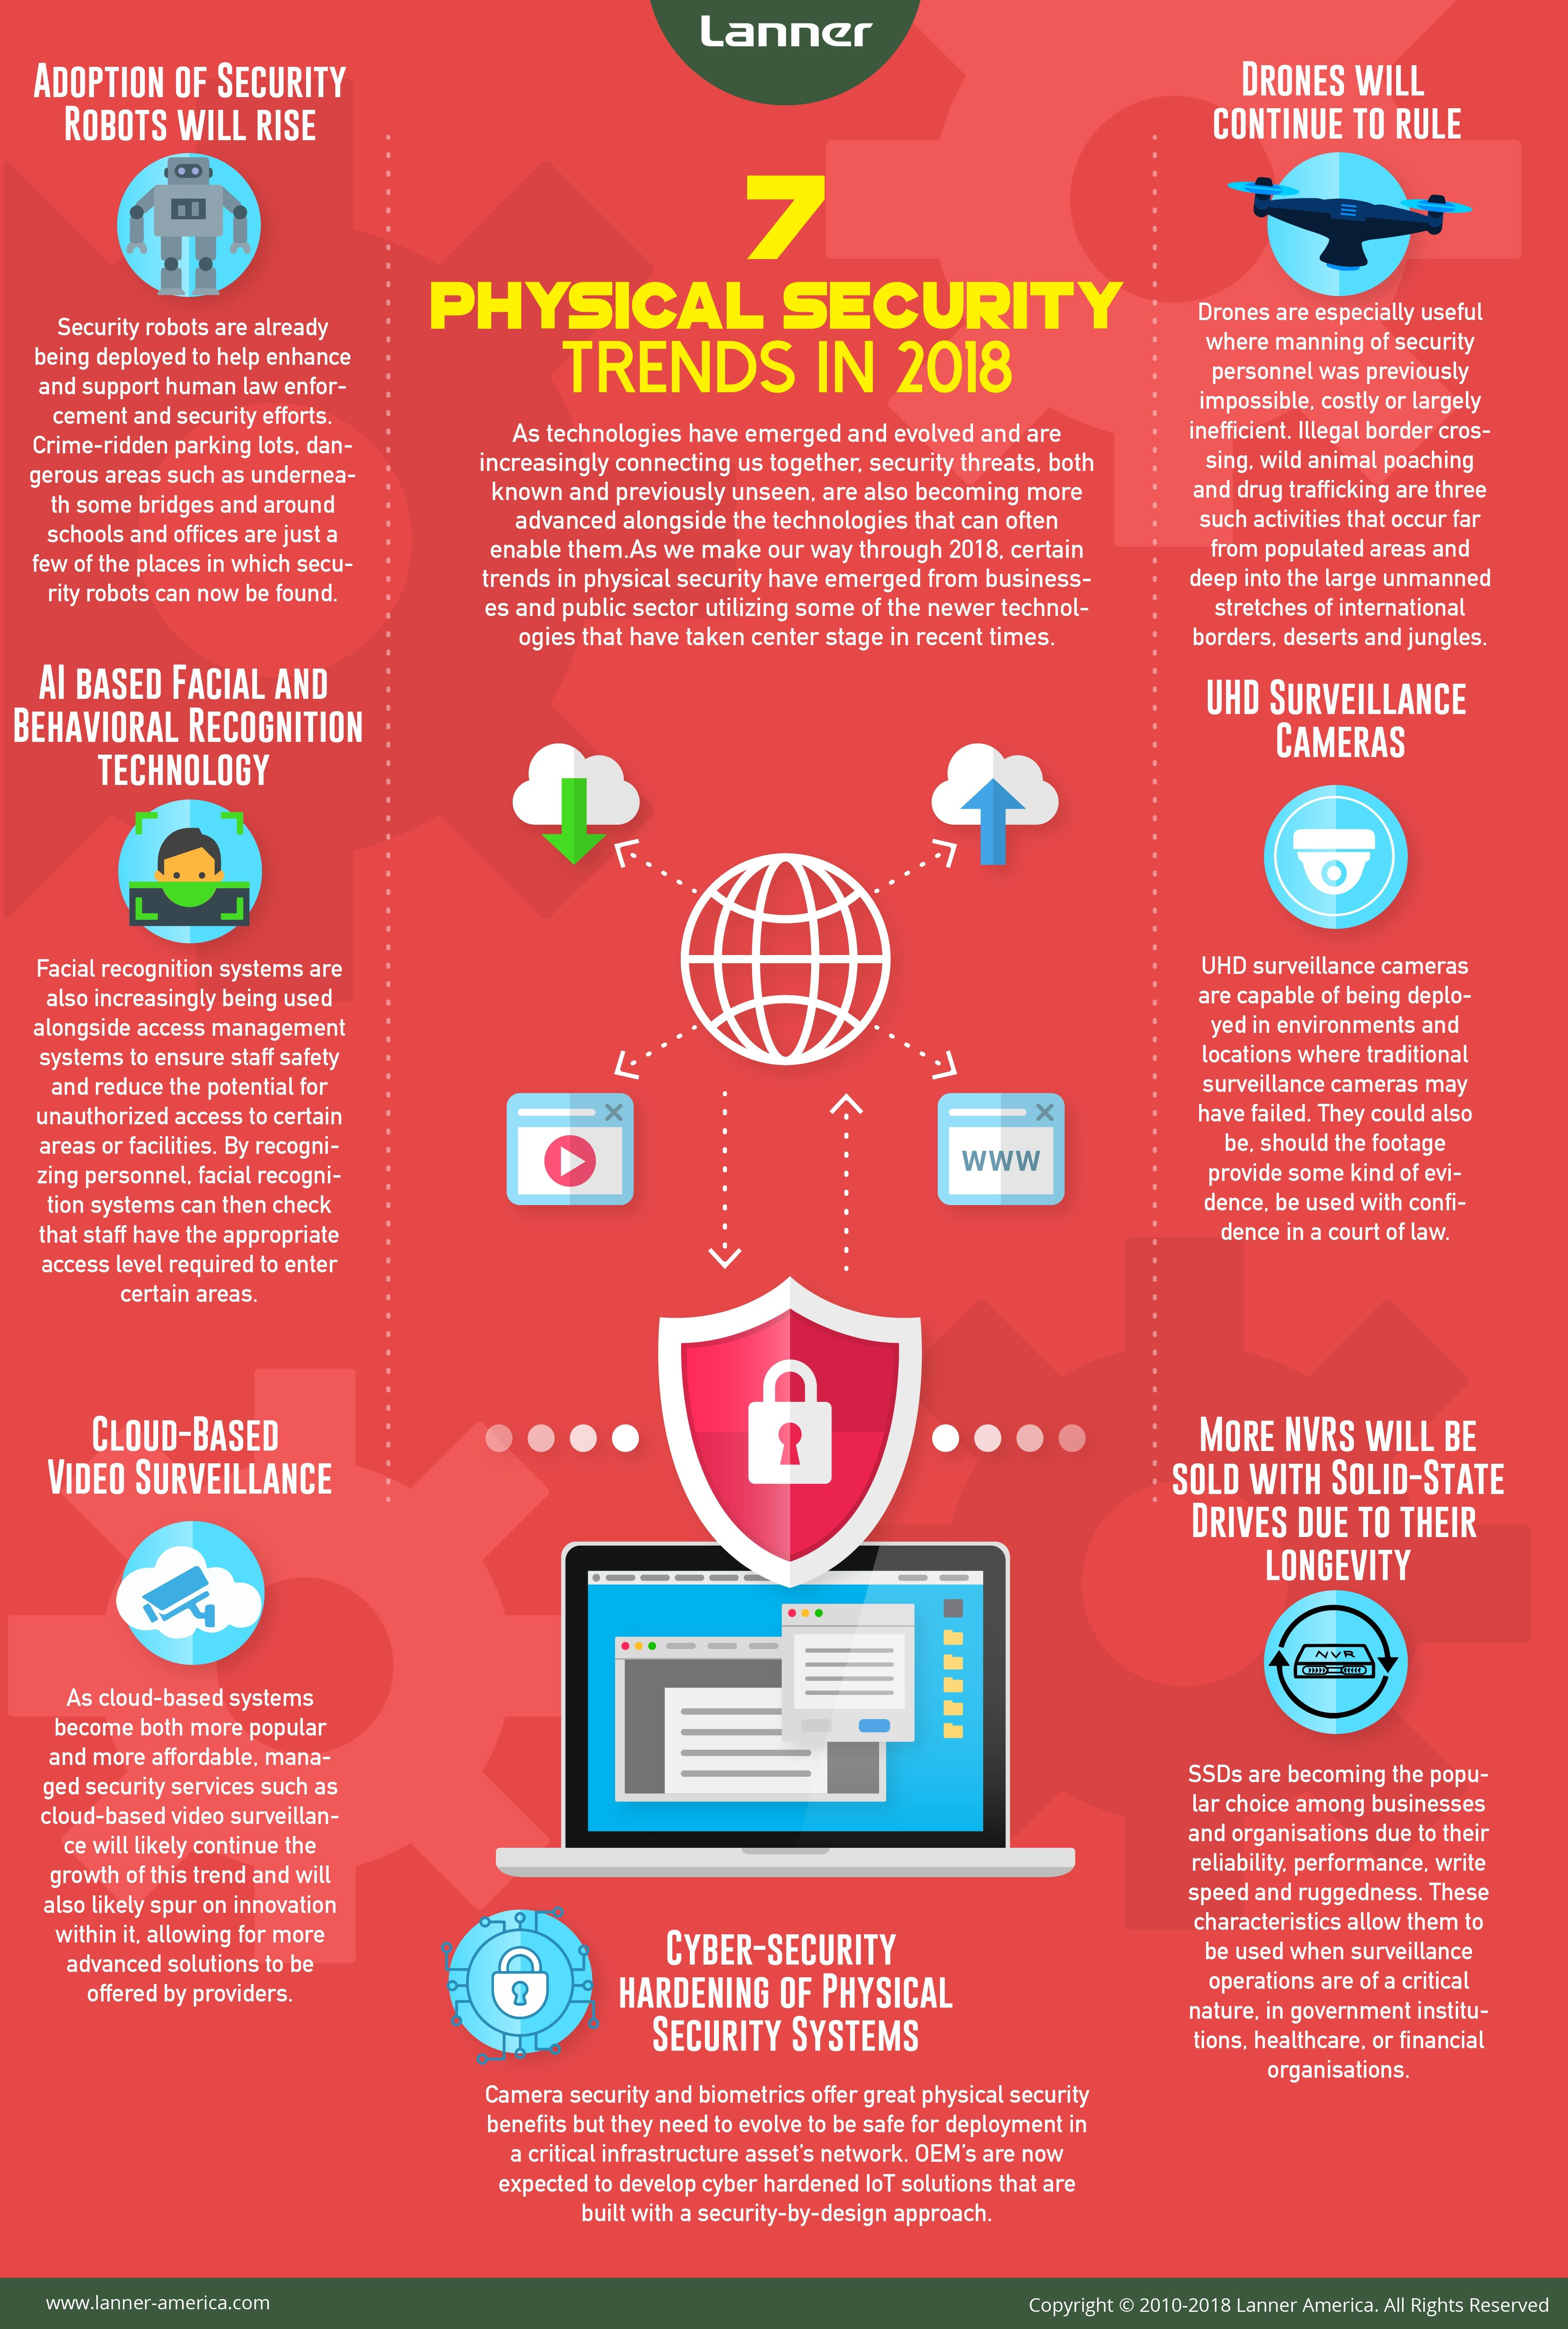 Pin by Lanner America on Infographics in 2019 Security